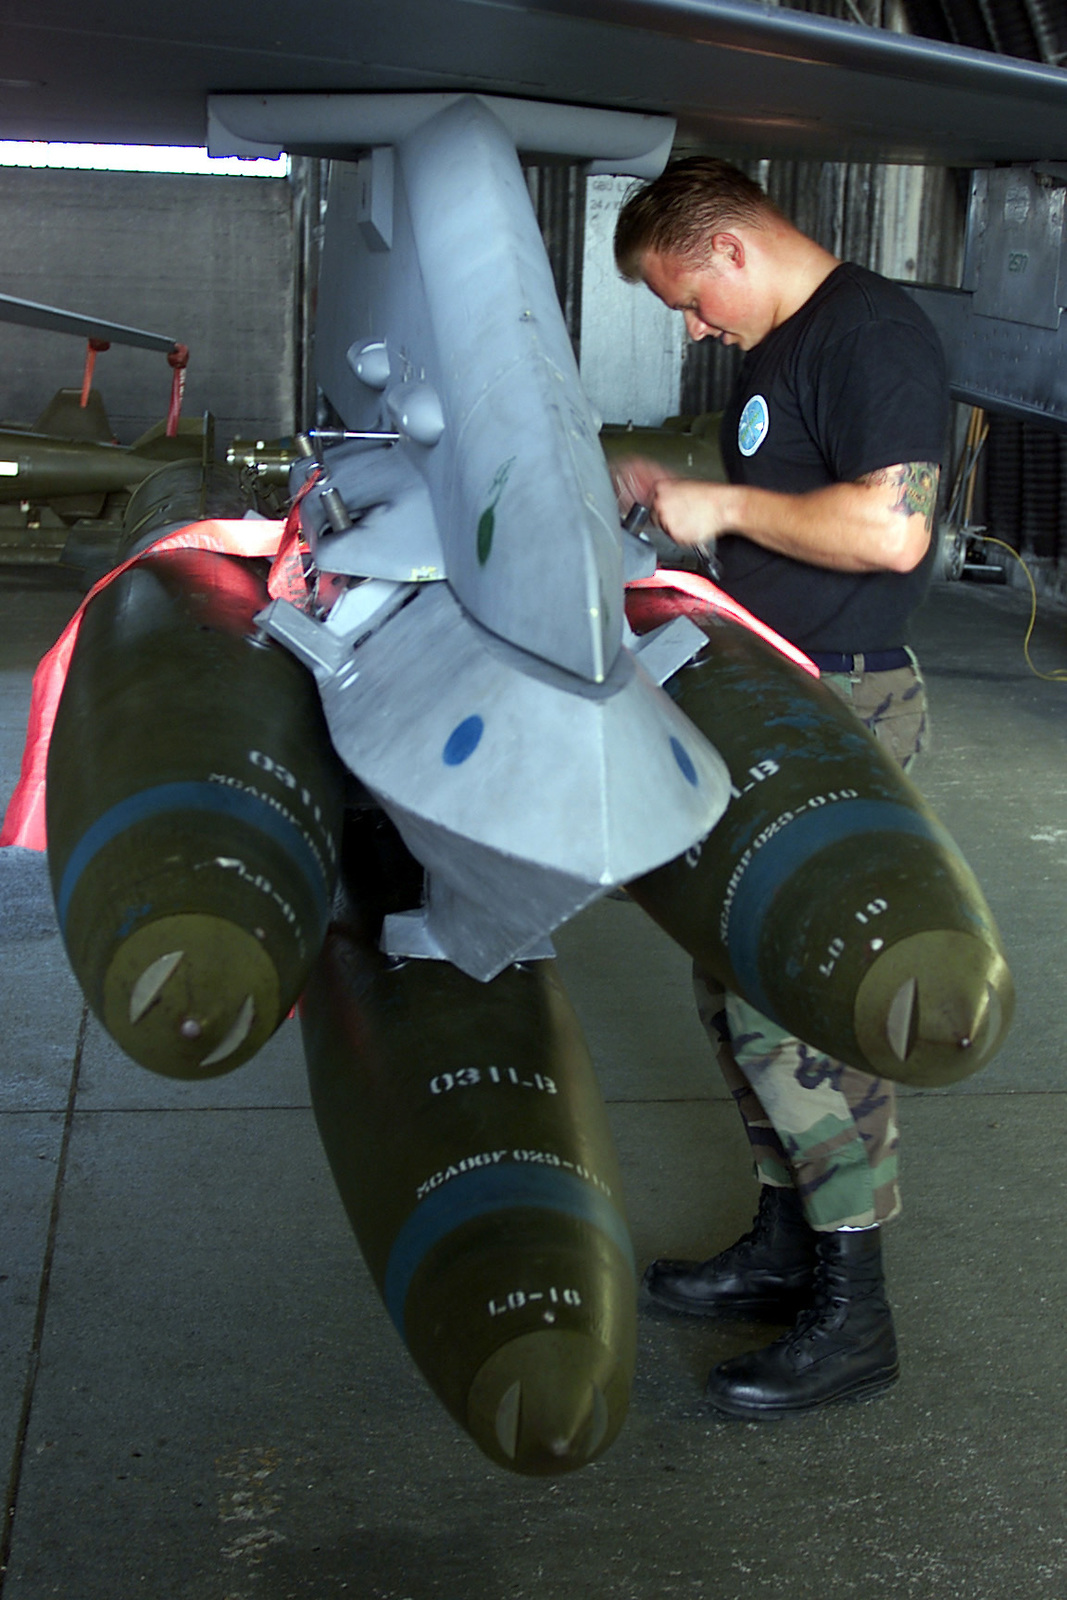 US Air Force (USAF) STAFF Sergeant (SSGT) Vincent Horn, Weapons Standardization Evaluator, secures MK-82 500-pound general-purpose bombs to a triple ejector rack attached to the wing pylon of a USAF F-16 Fighting Falcon aircraft at Aviano Air Base (AB), Italy